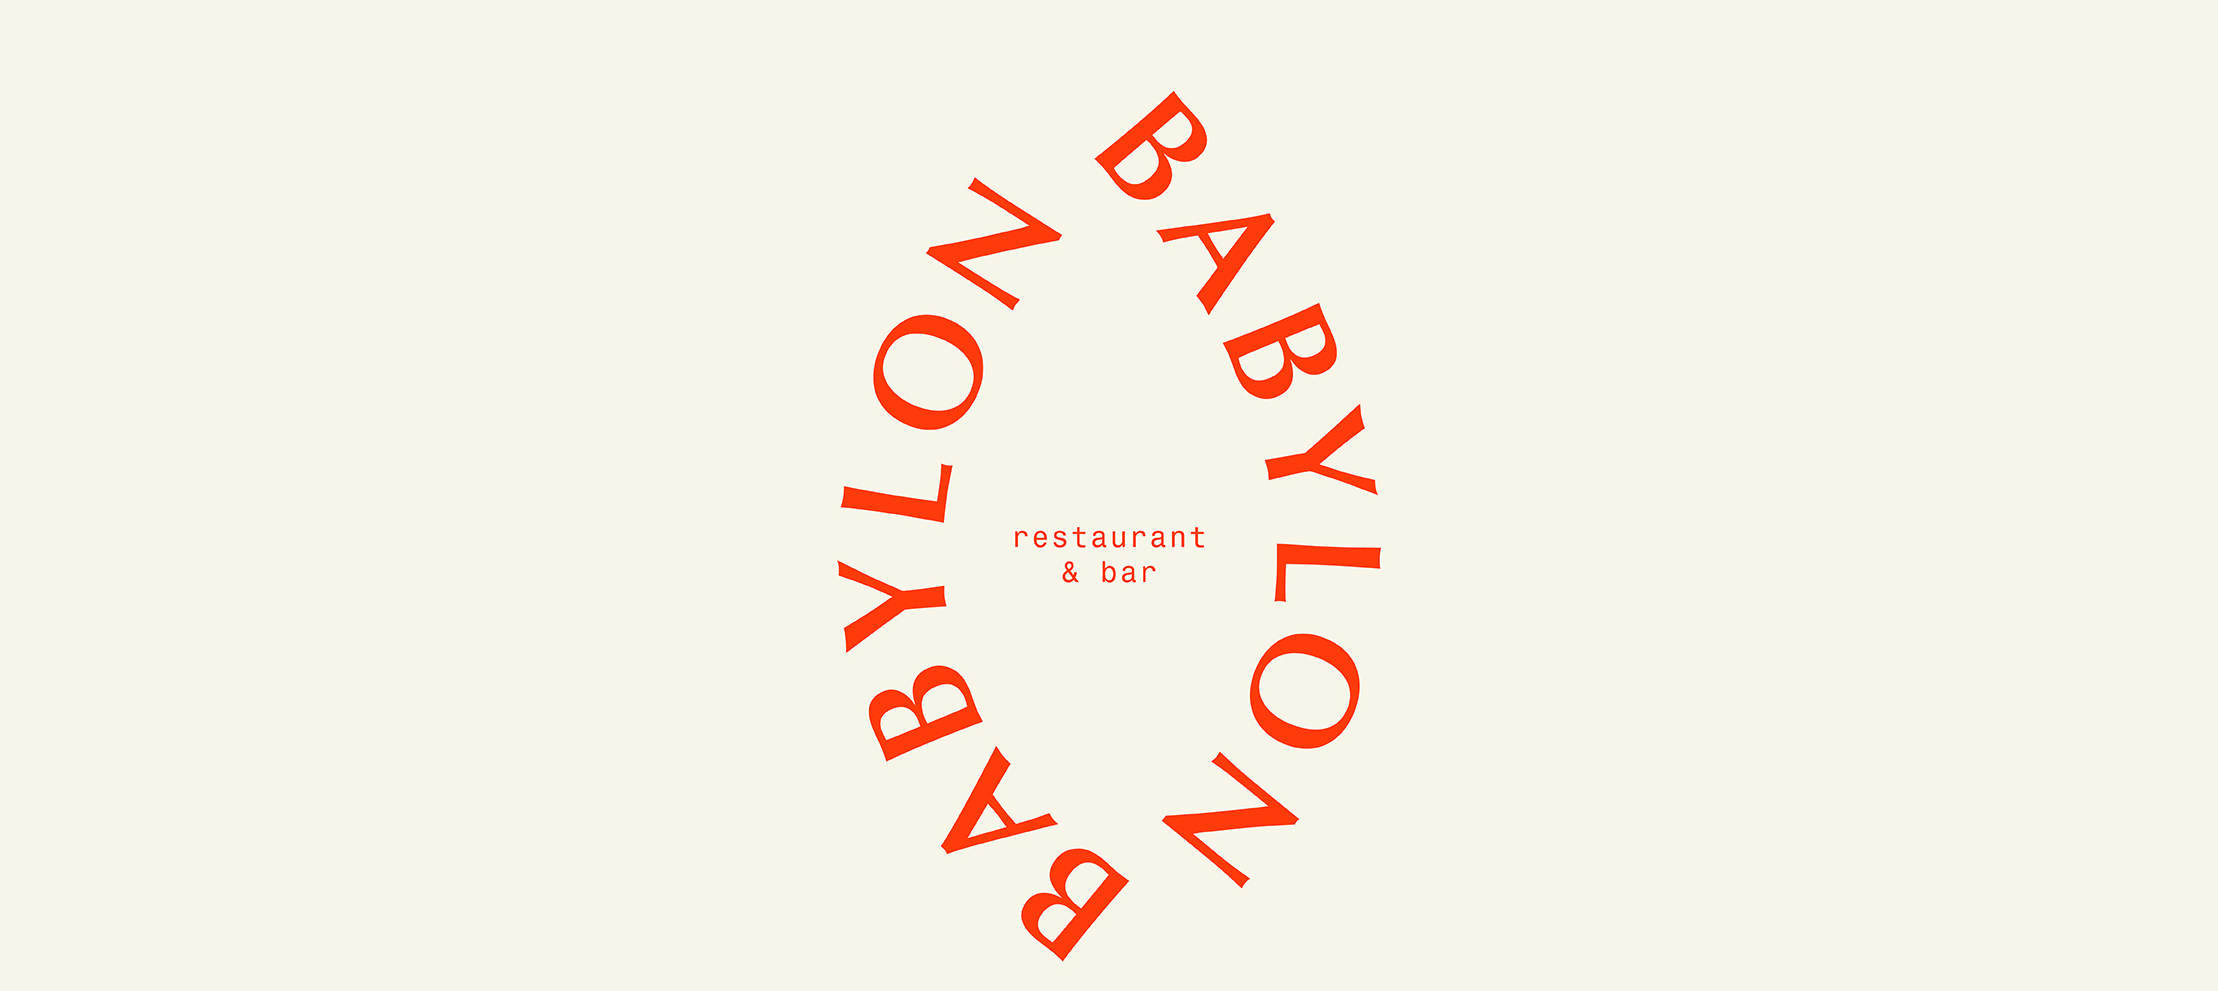 Restaurant Babylon